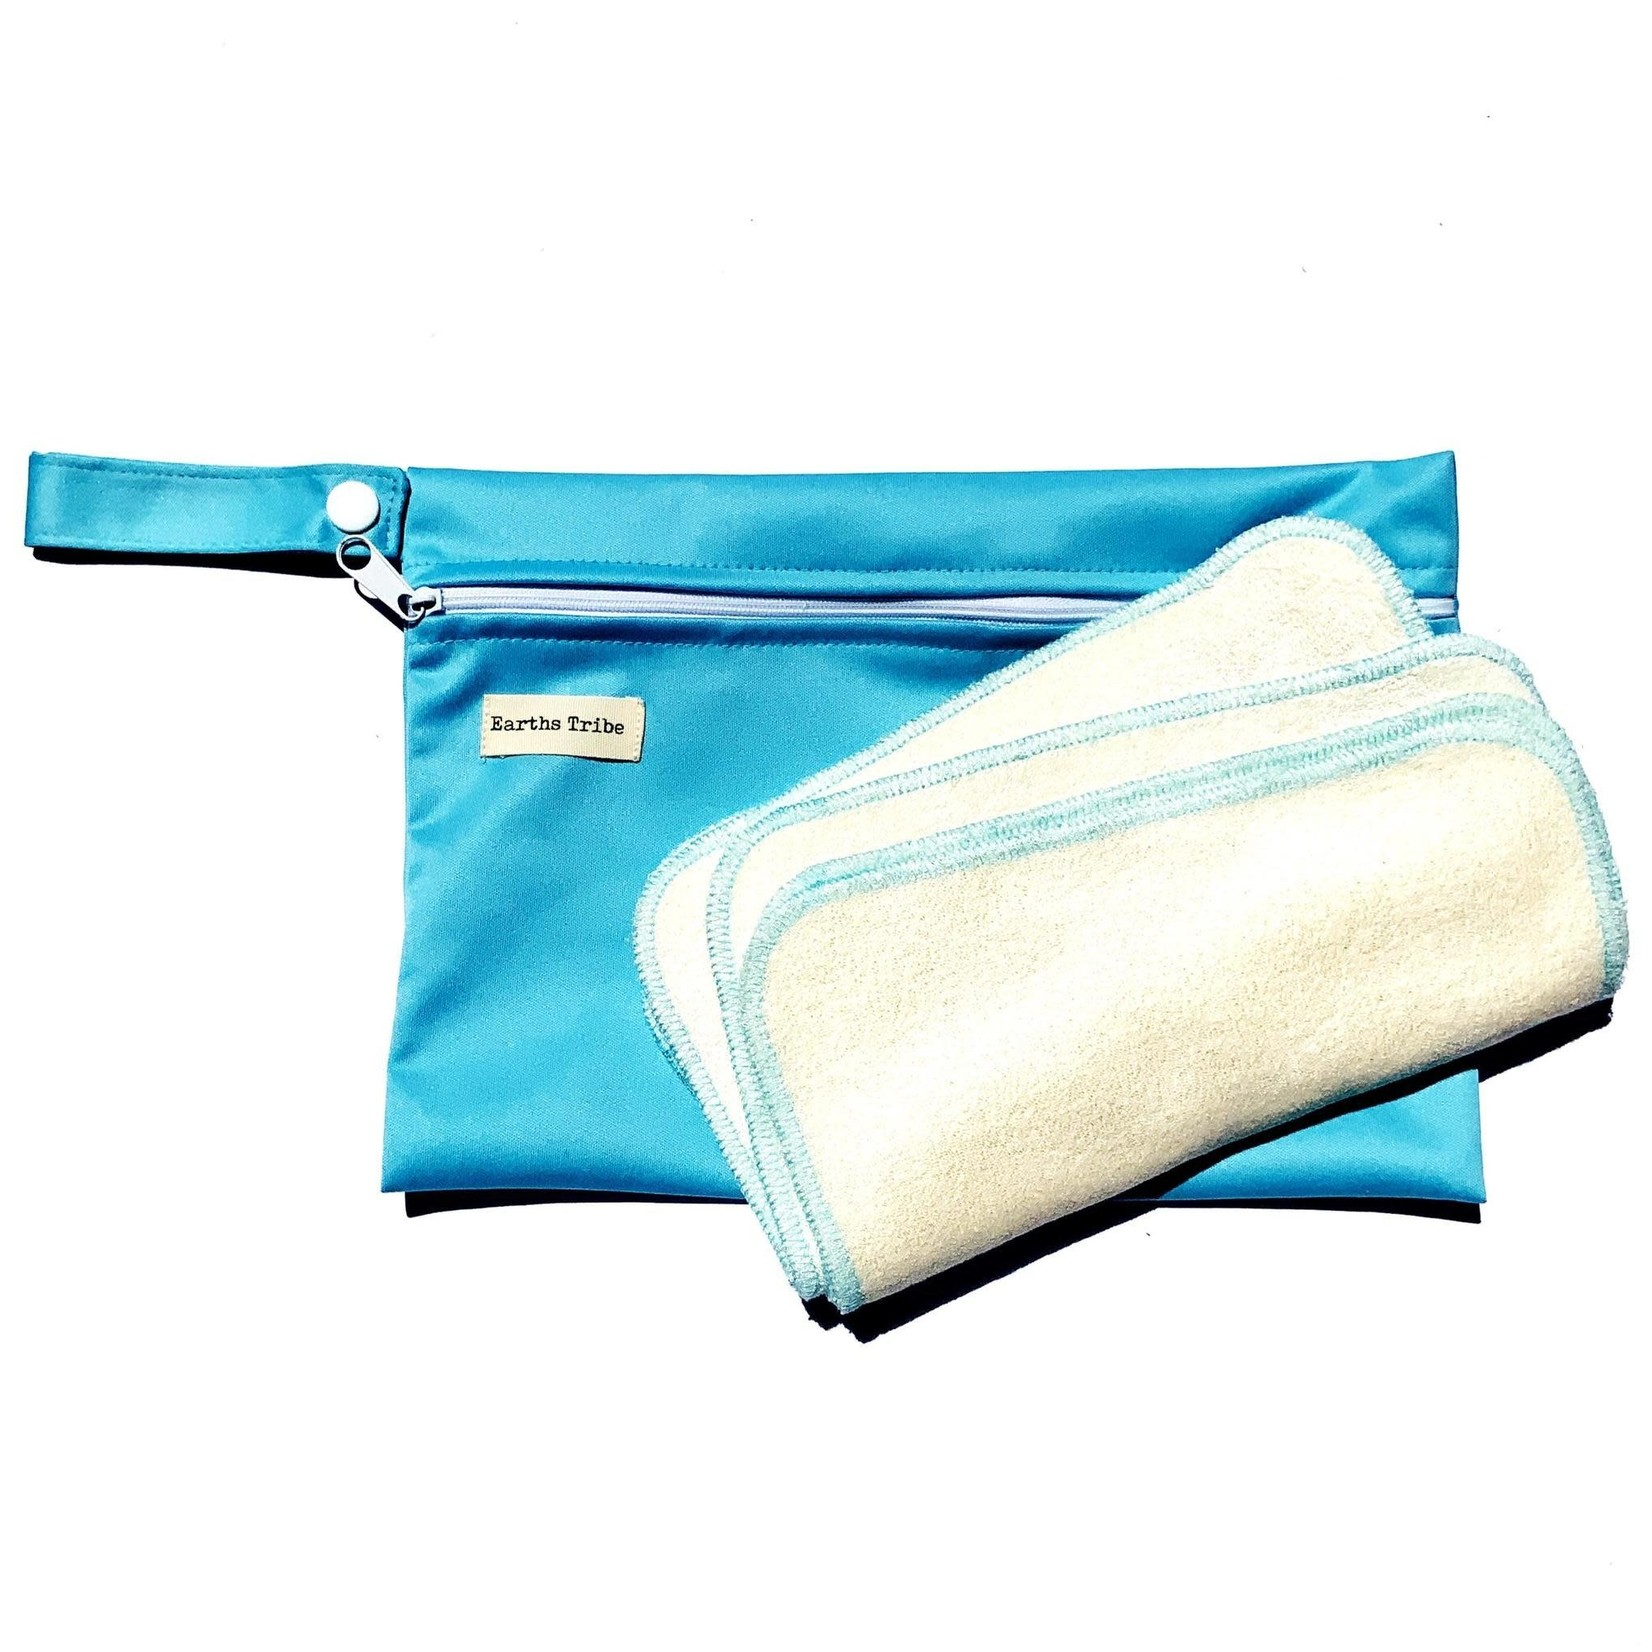 Earths Tribe Earths Tribe Reusable Cloth Wipes